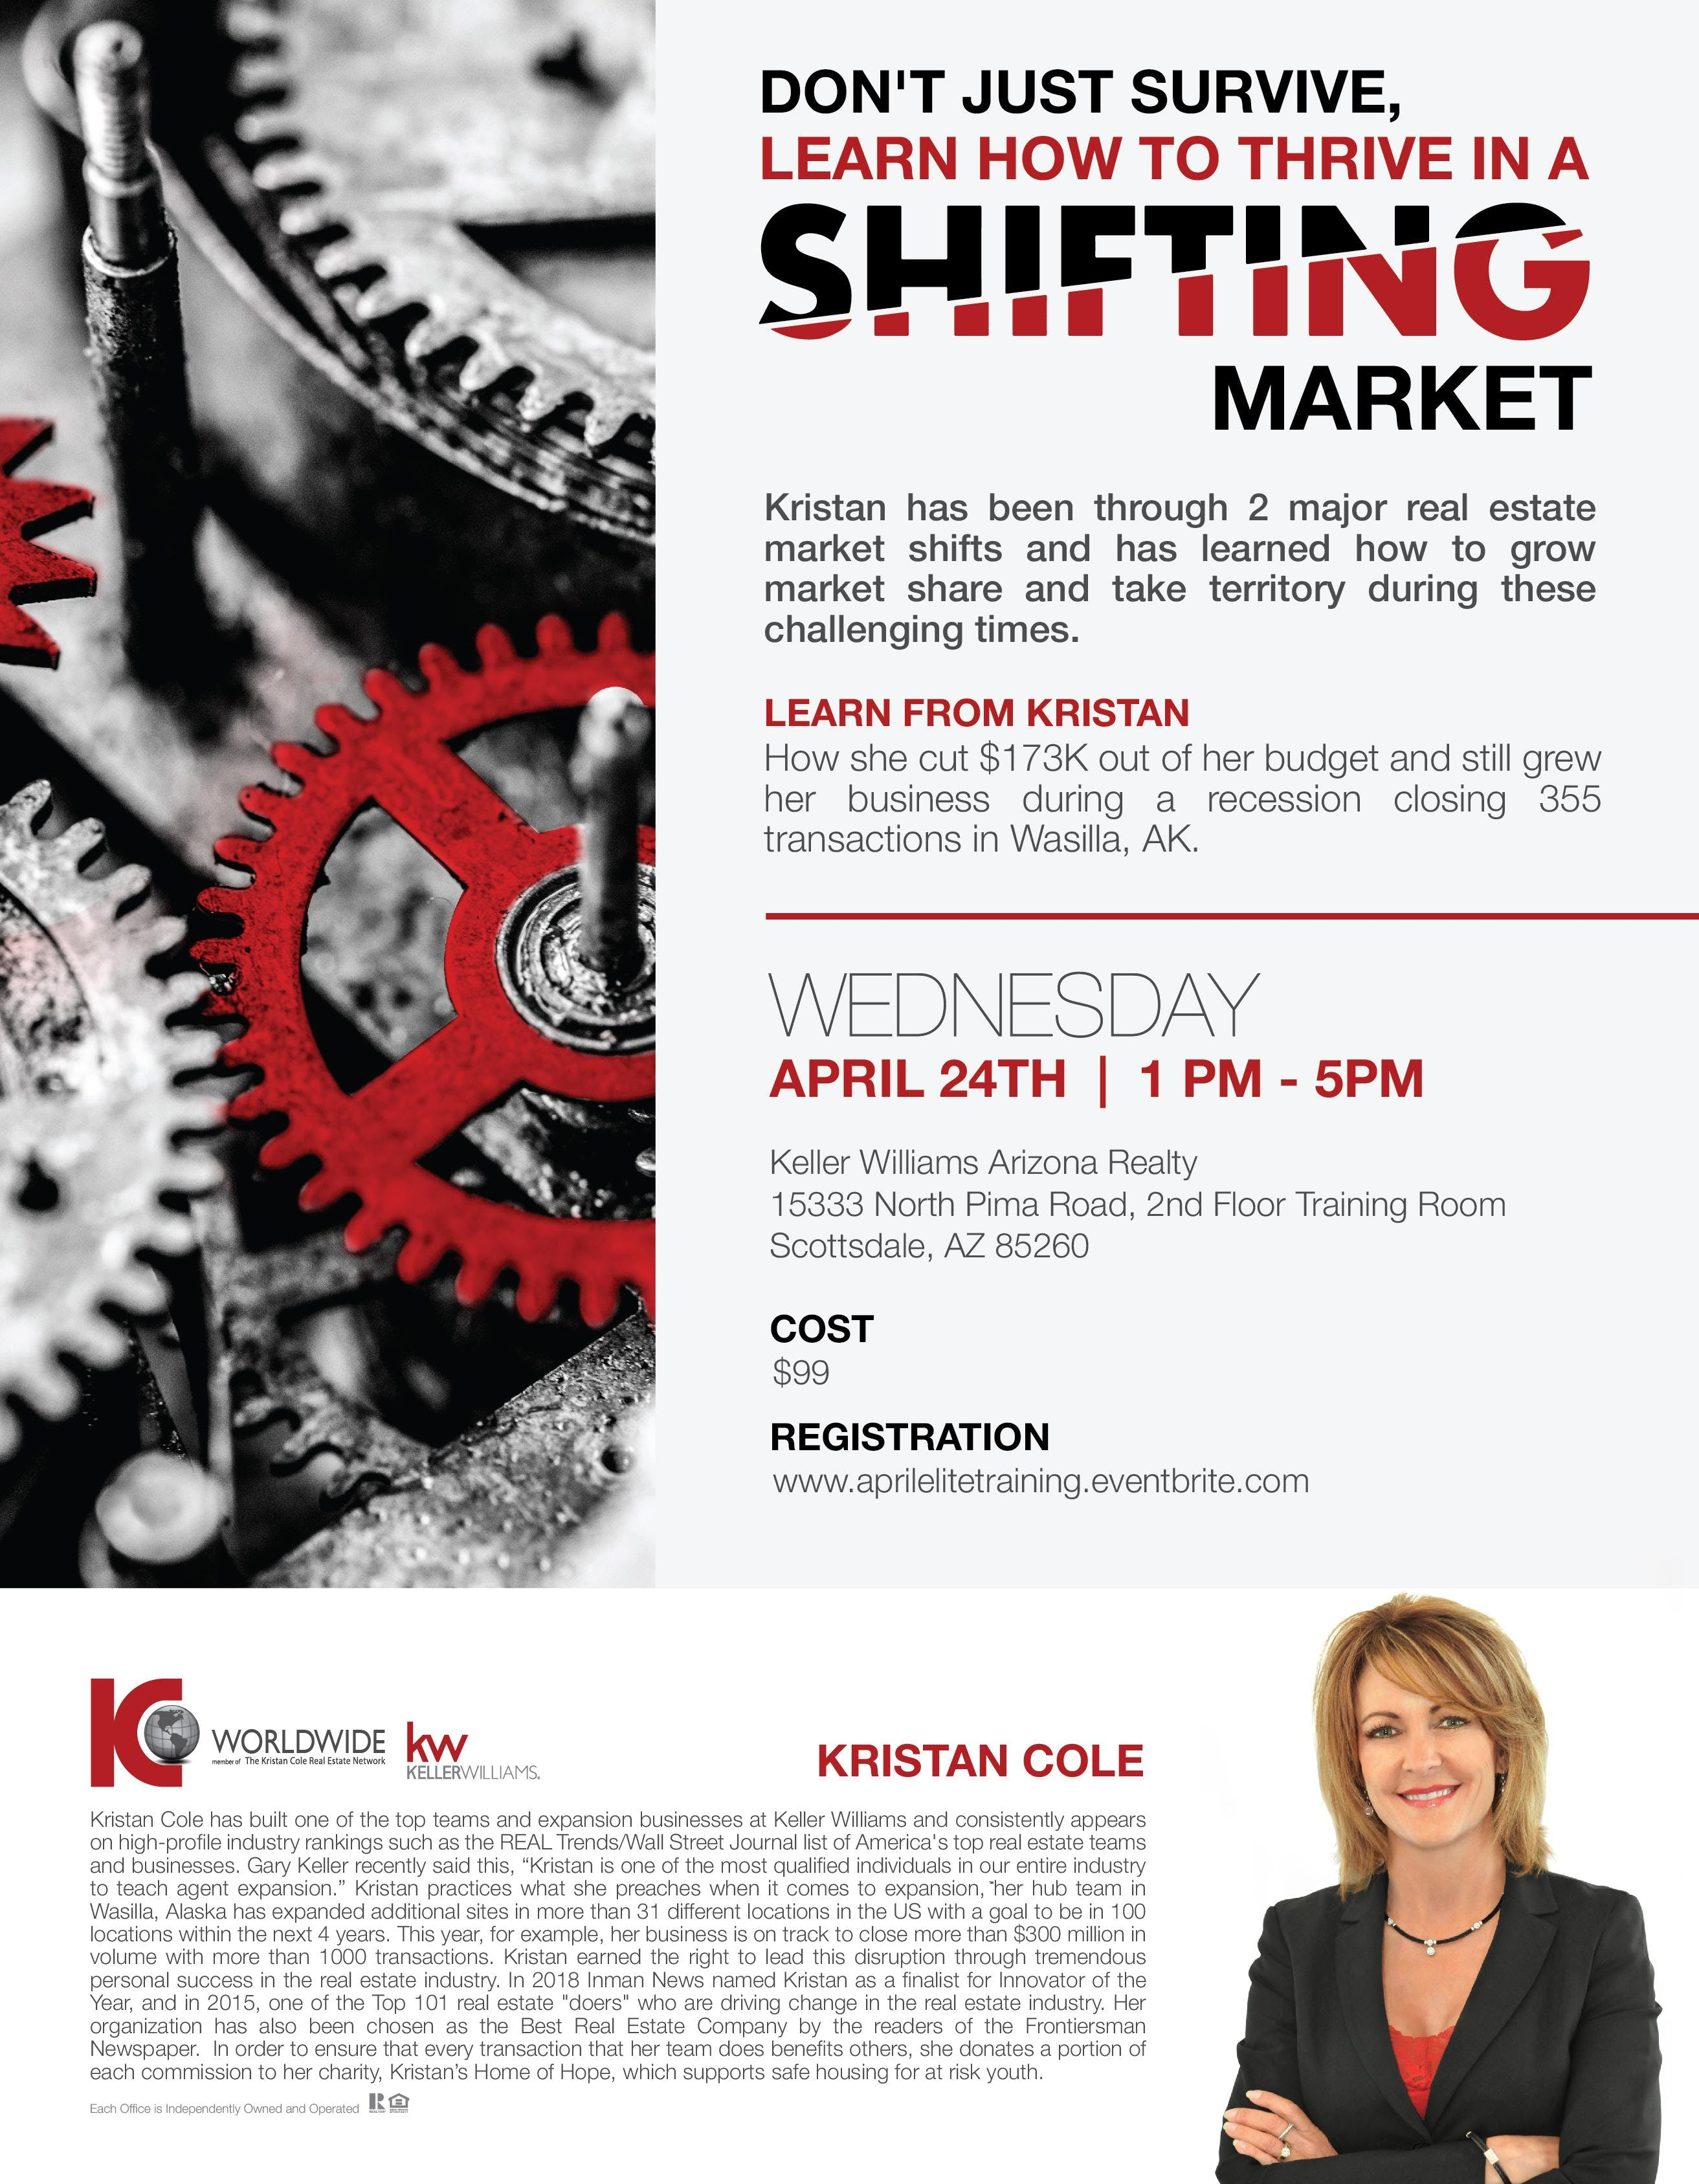 Don't Just Survive, Learn How to Thrive in a Shifting Market!